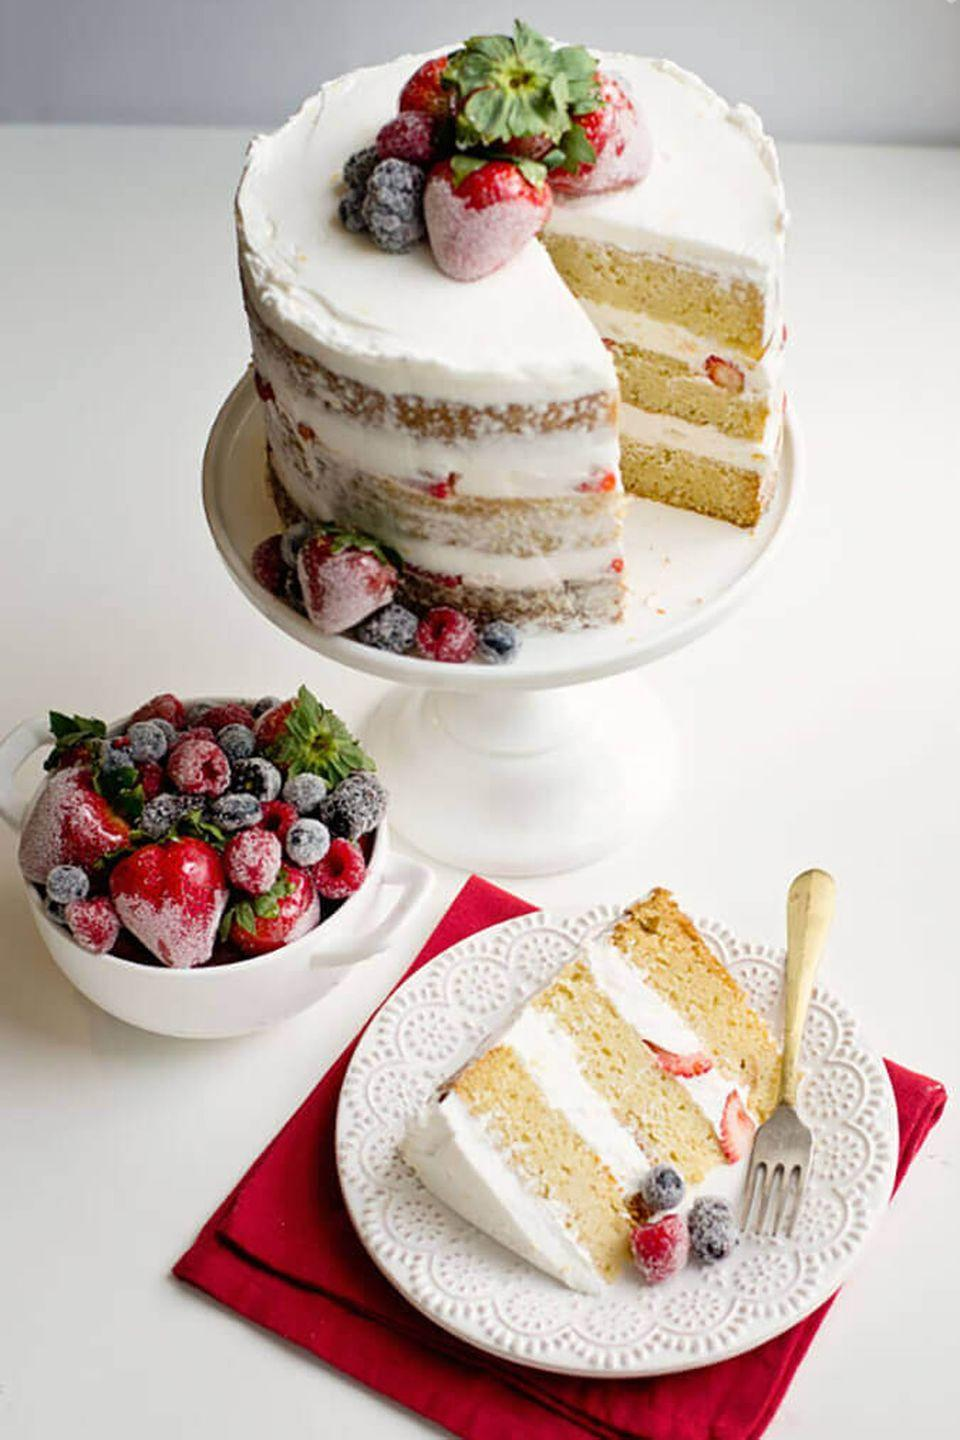 """<p>Mom's love Pinterest — and naked cakes are the latest and greatest Pinterest find. </p><p><em><a href=""""https://ashleemarie.com/naked-cake-candied-sugared-berries/"""" rel=""""nofollow noopener"""" target=""""_blank"""" data-ylk=""""slk:Get the recipe from Ashlee Marie »"""" class=""""link rapid-noclick-resp"""">Get the recipe from Ashlee Marie »</a></em></p>"""